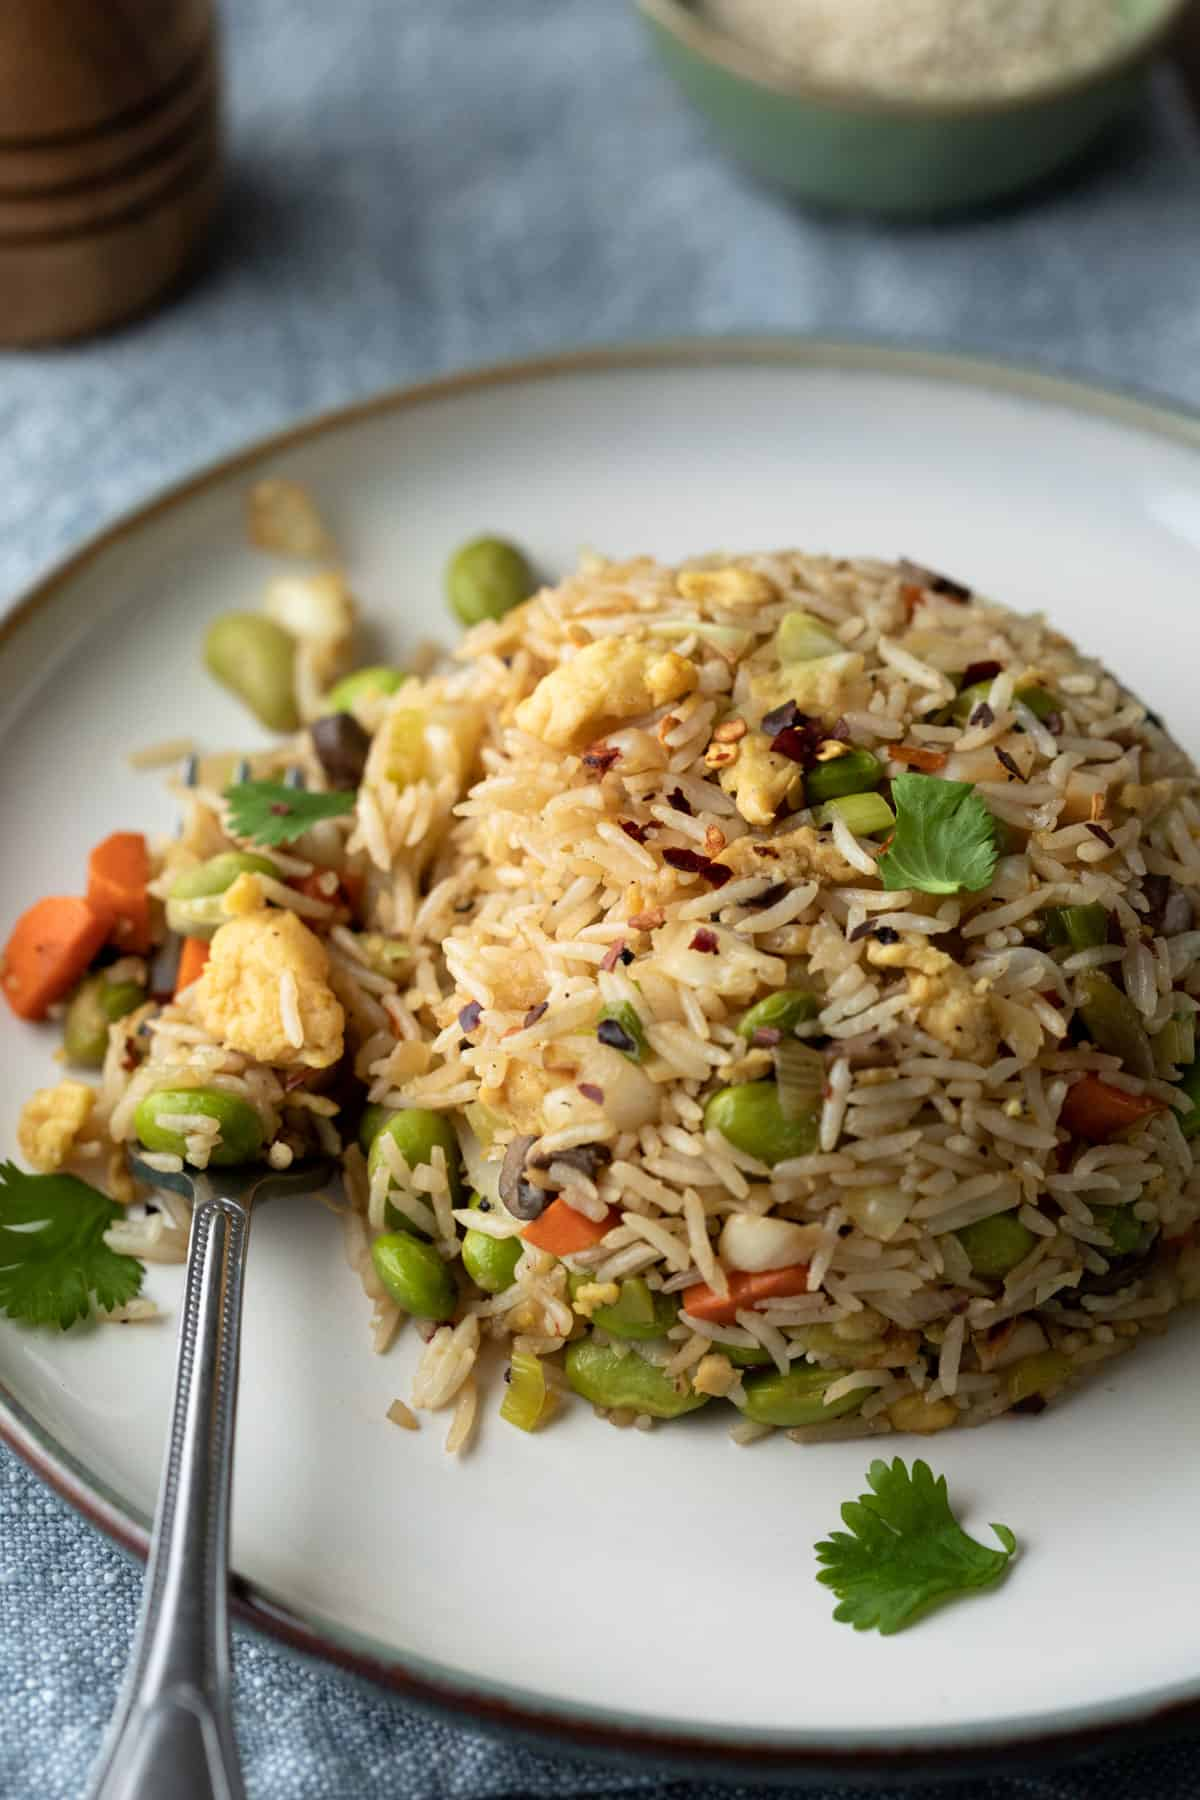 vegetable fried rice made with edamame and Just Egg on a plate.